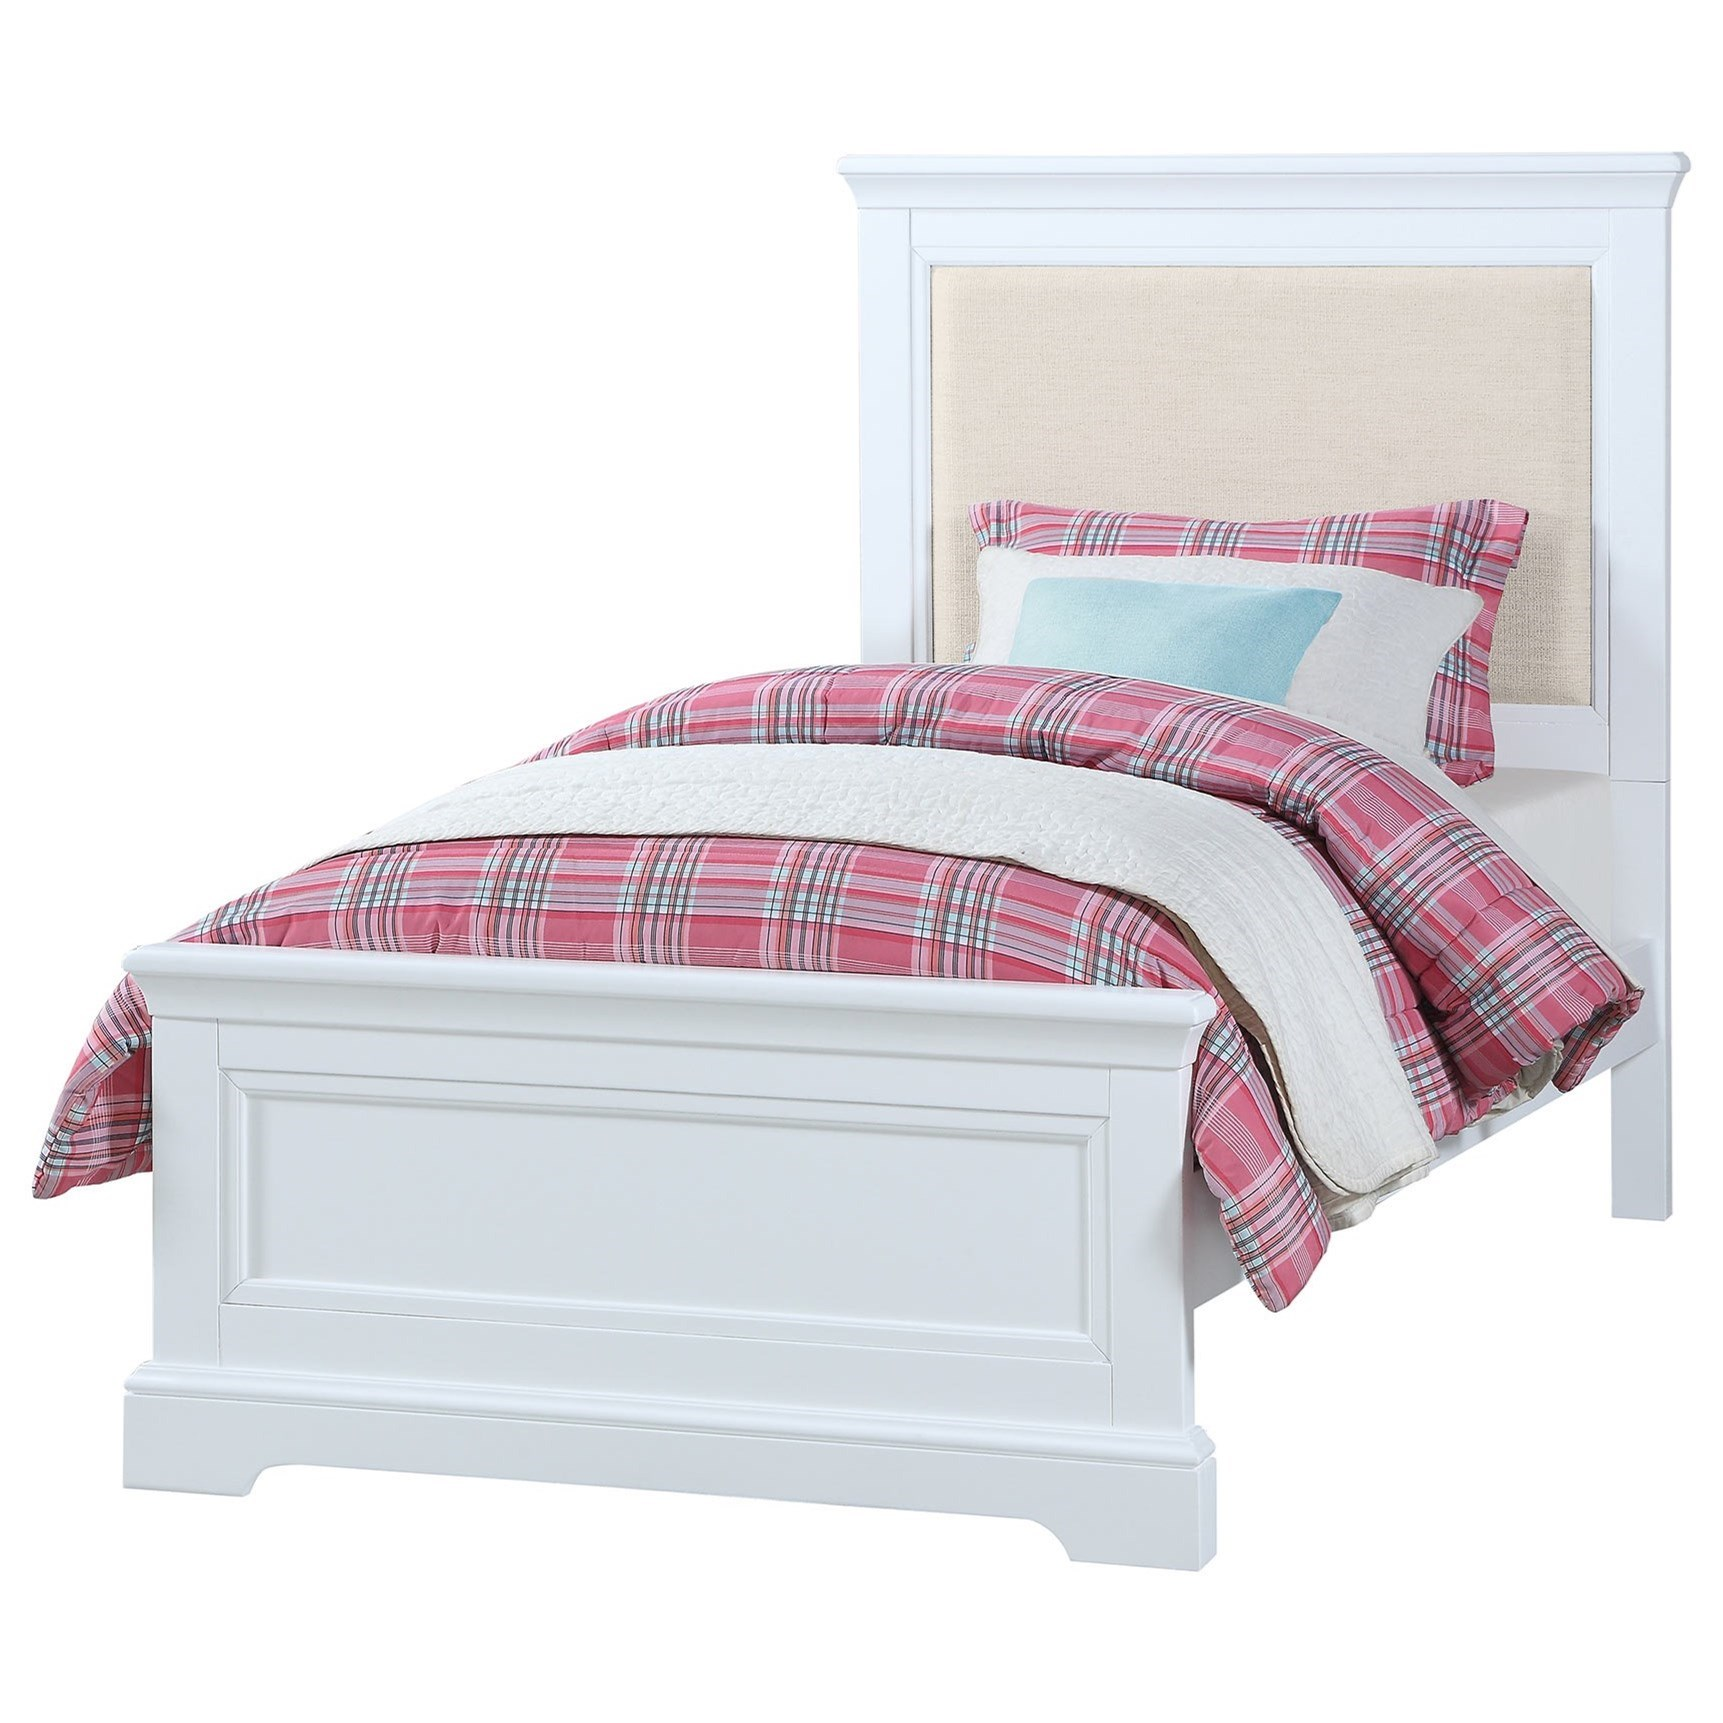 Tamarack Twin Upholstered Bed by Winners Only at Gill Brothers Furniture